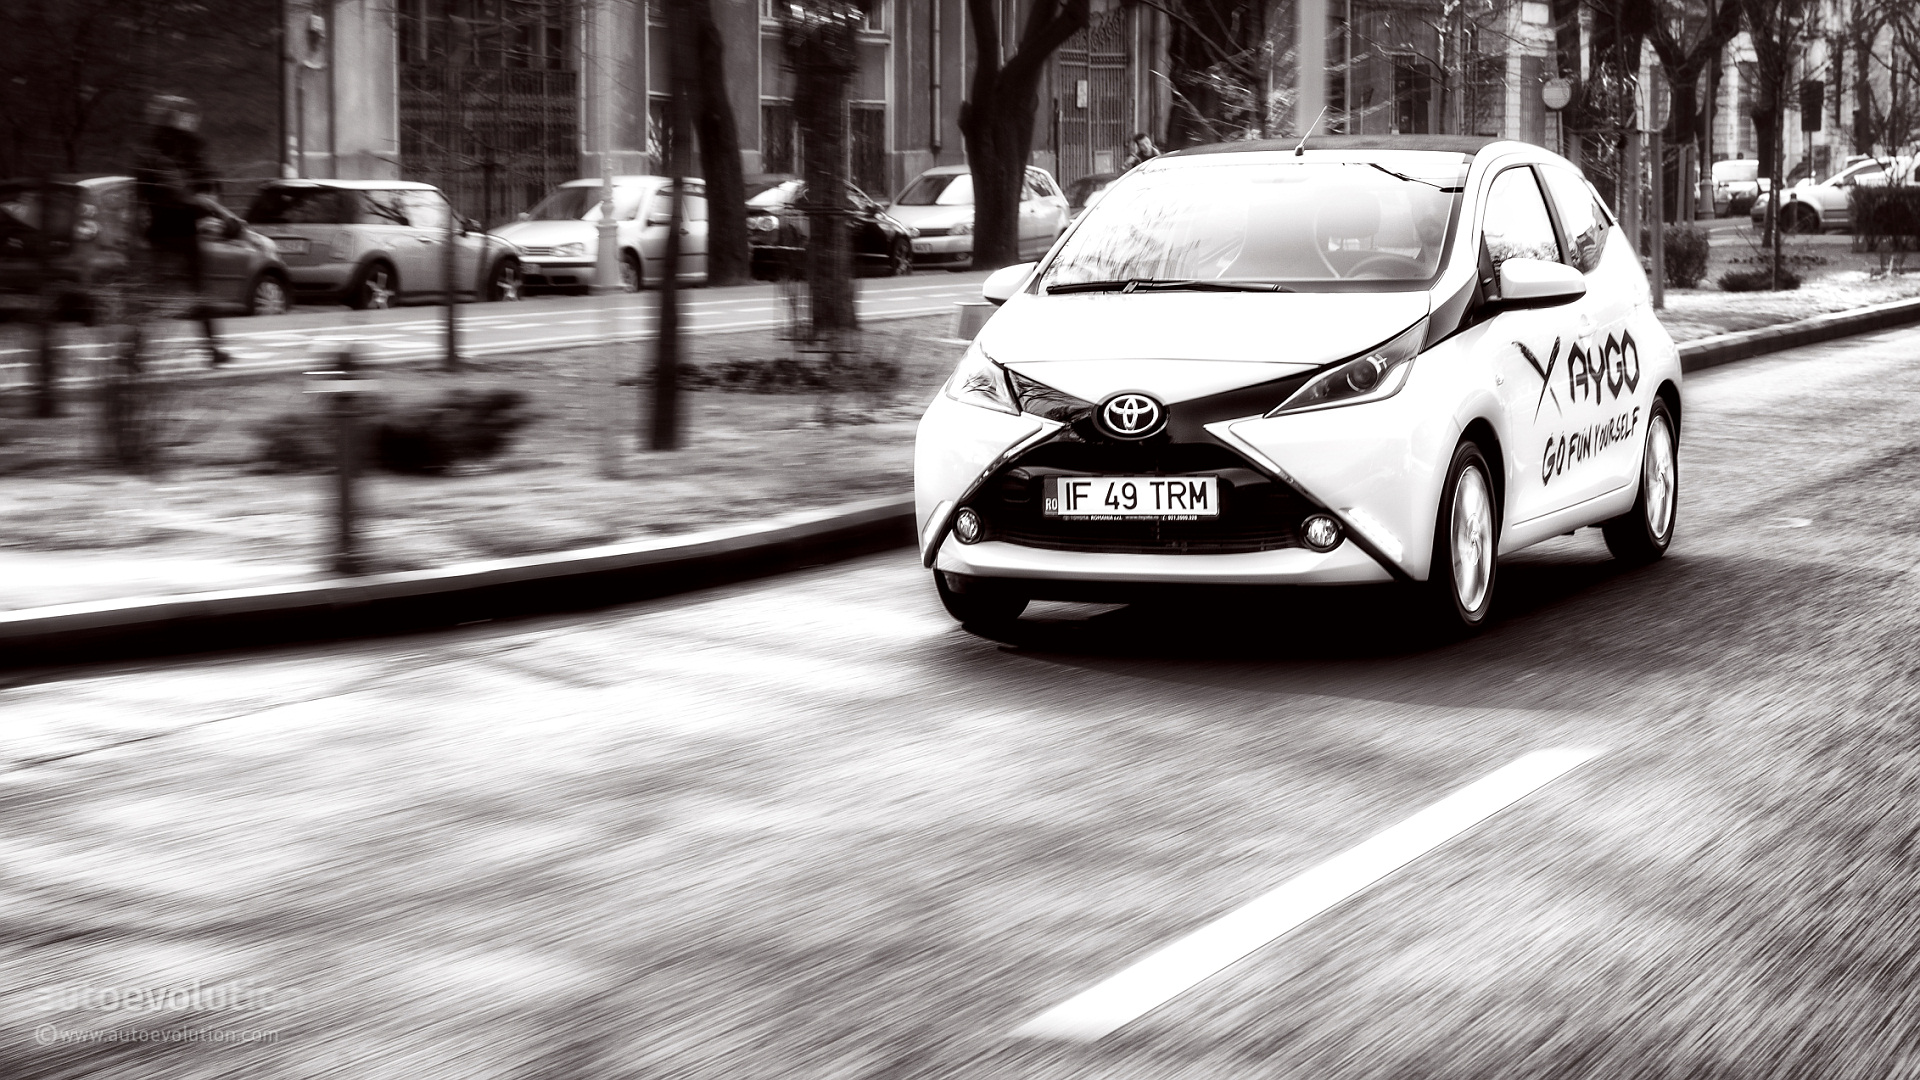 2015 Toyota Aygo X Wave Hd Wallpapers Barrel Of Fun